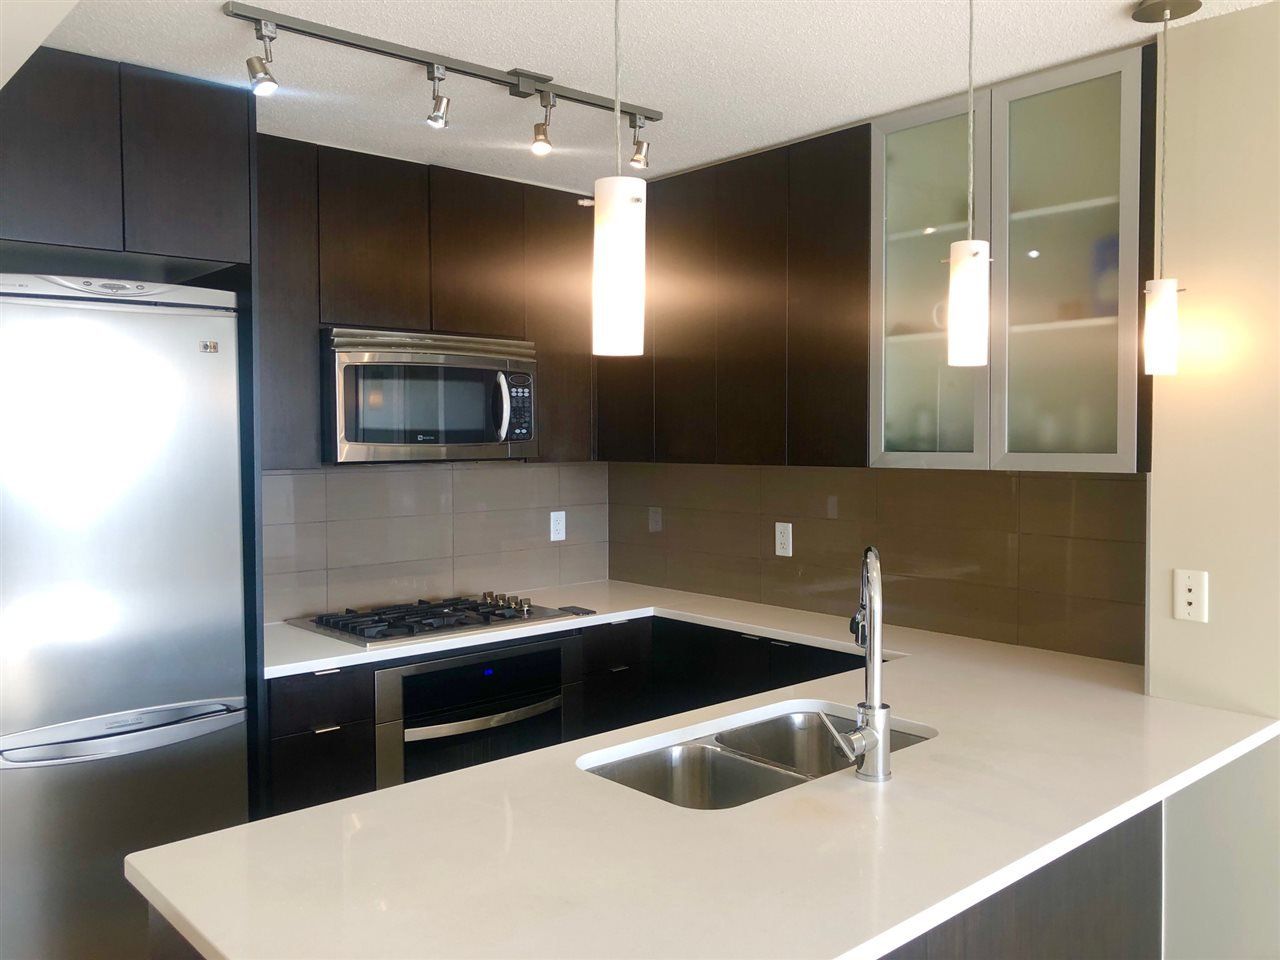 """Photo 8: Photos: 2206 7328 ARCOLA Street in Burnaby: Highgate Condo for sale in """"ESPRIT SOUTH"""" (Burnaby South)  : MLS®# R2435579"""